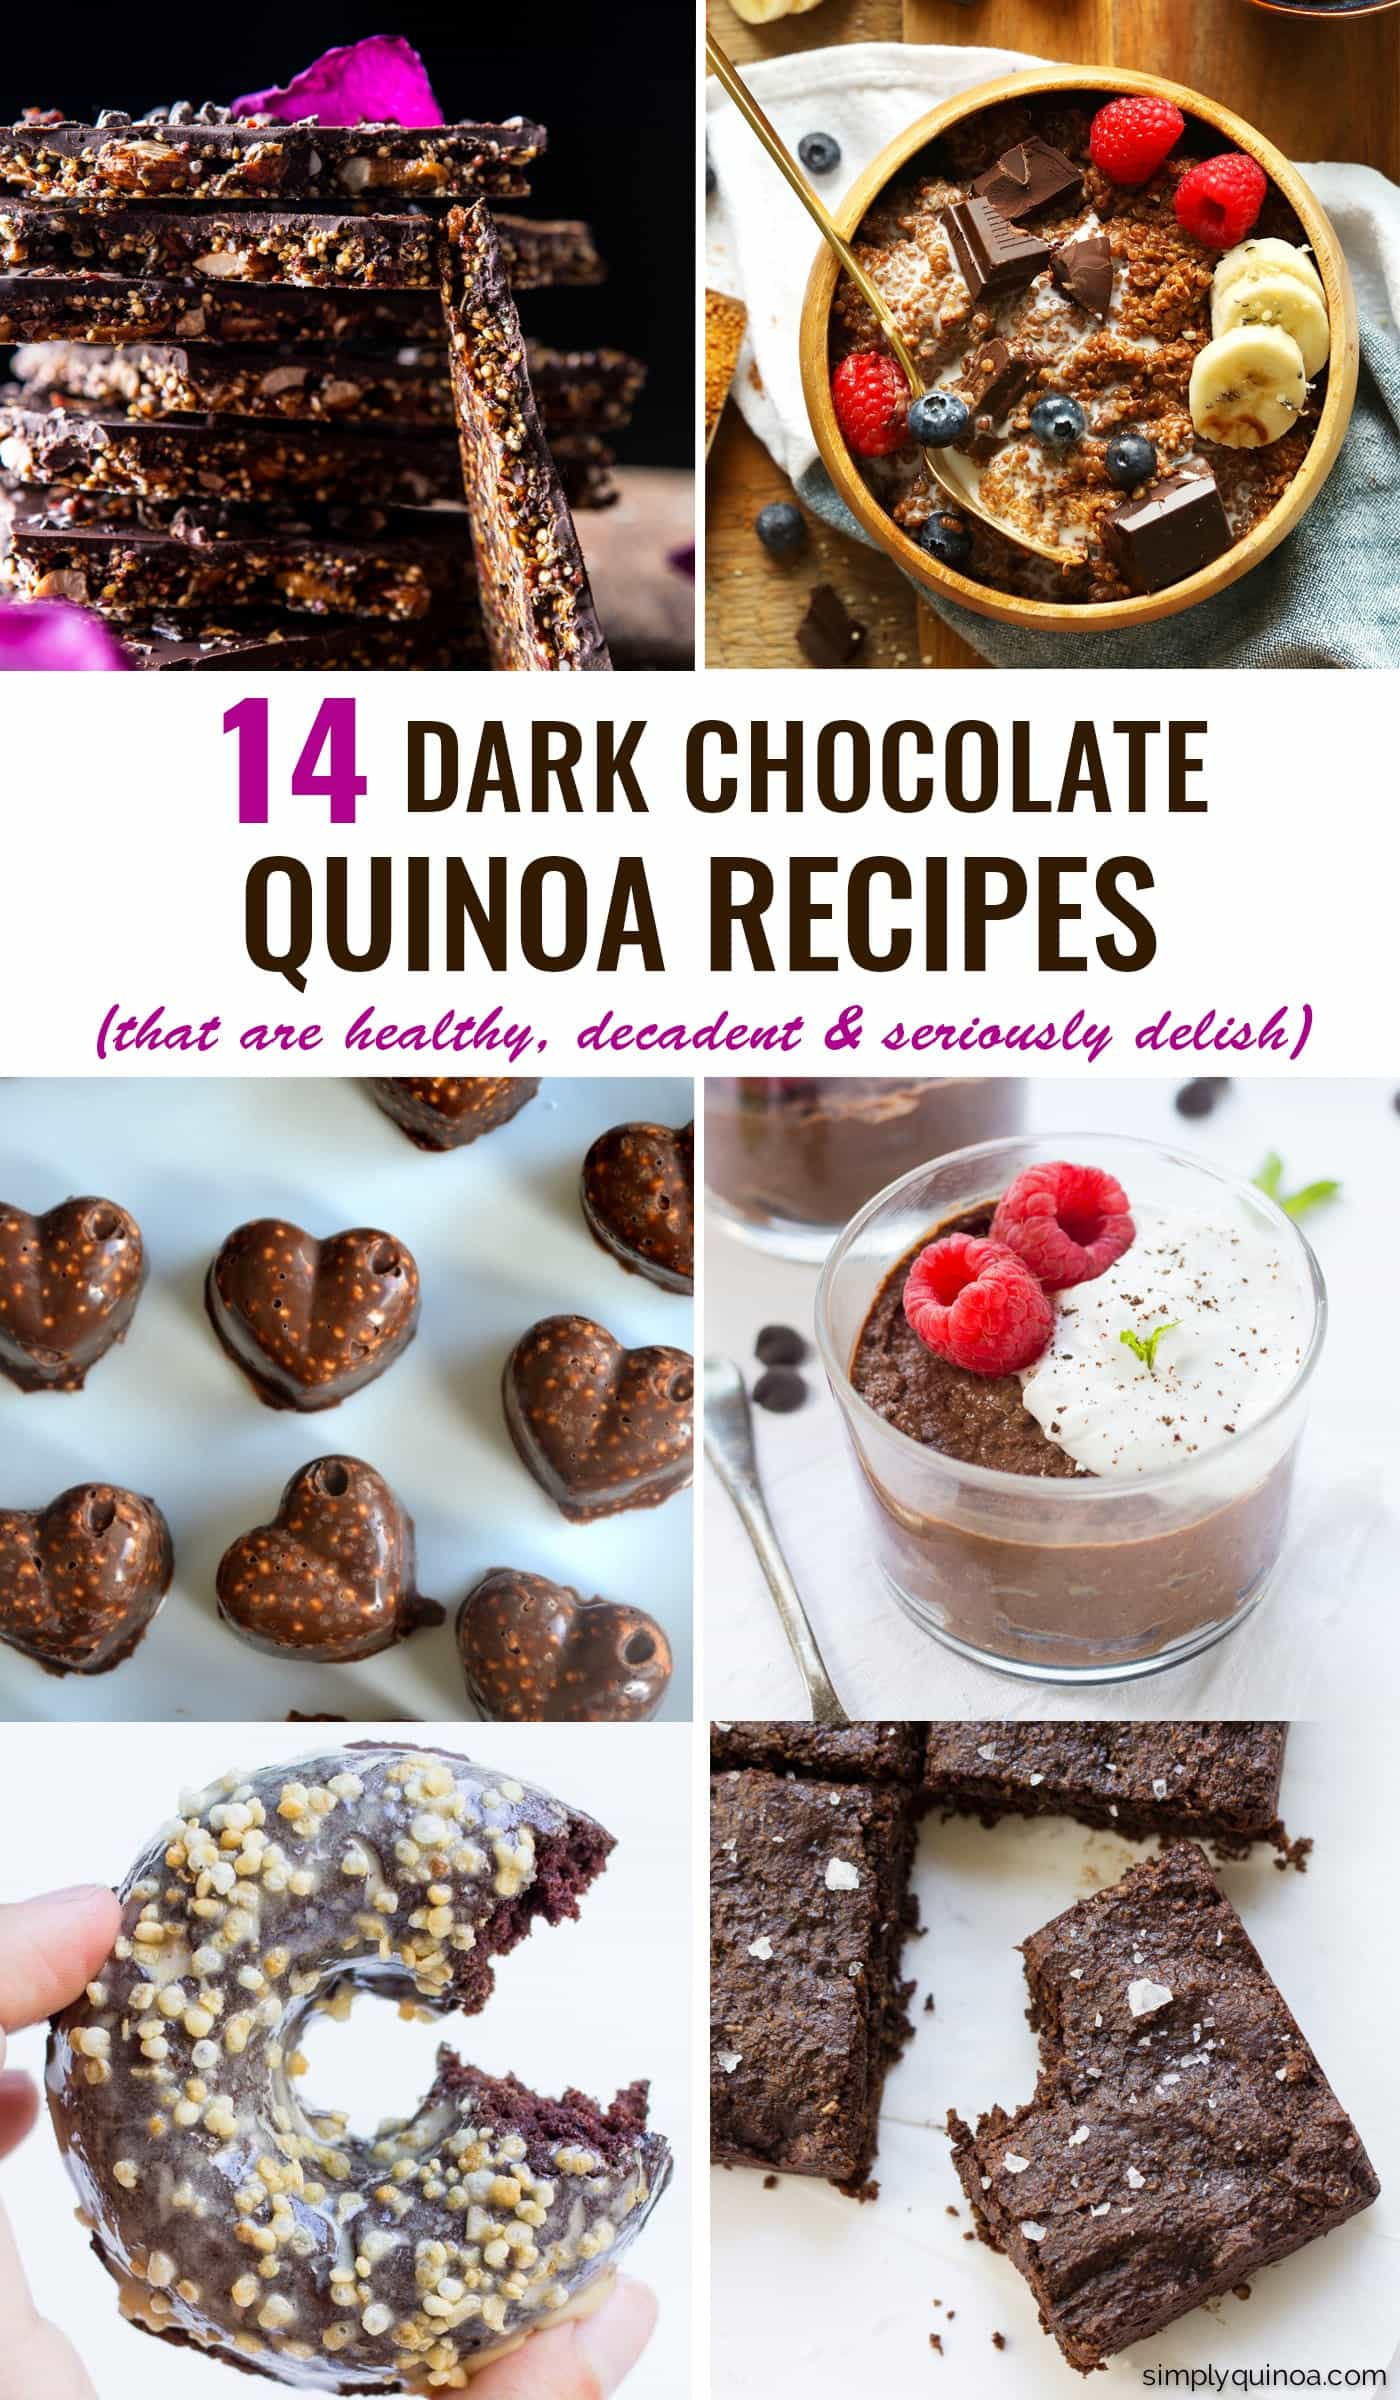 The 14 BEST dark chocolate quinoa recipes you will ever find! From easy breakfasts to decadent desserts, each one is healthy and delicious!